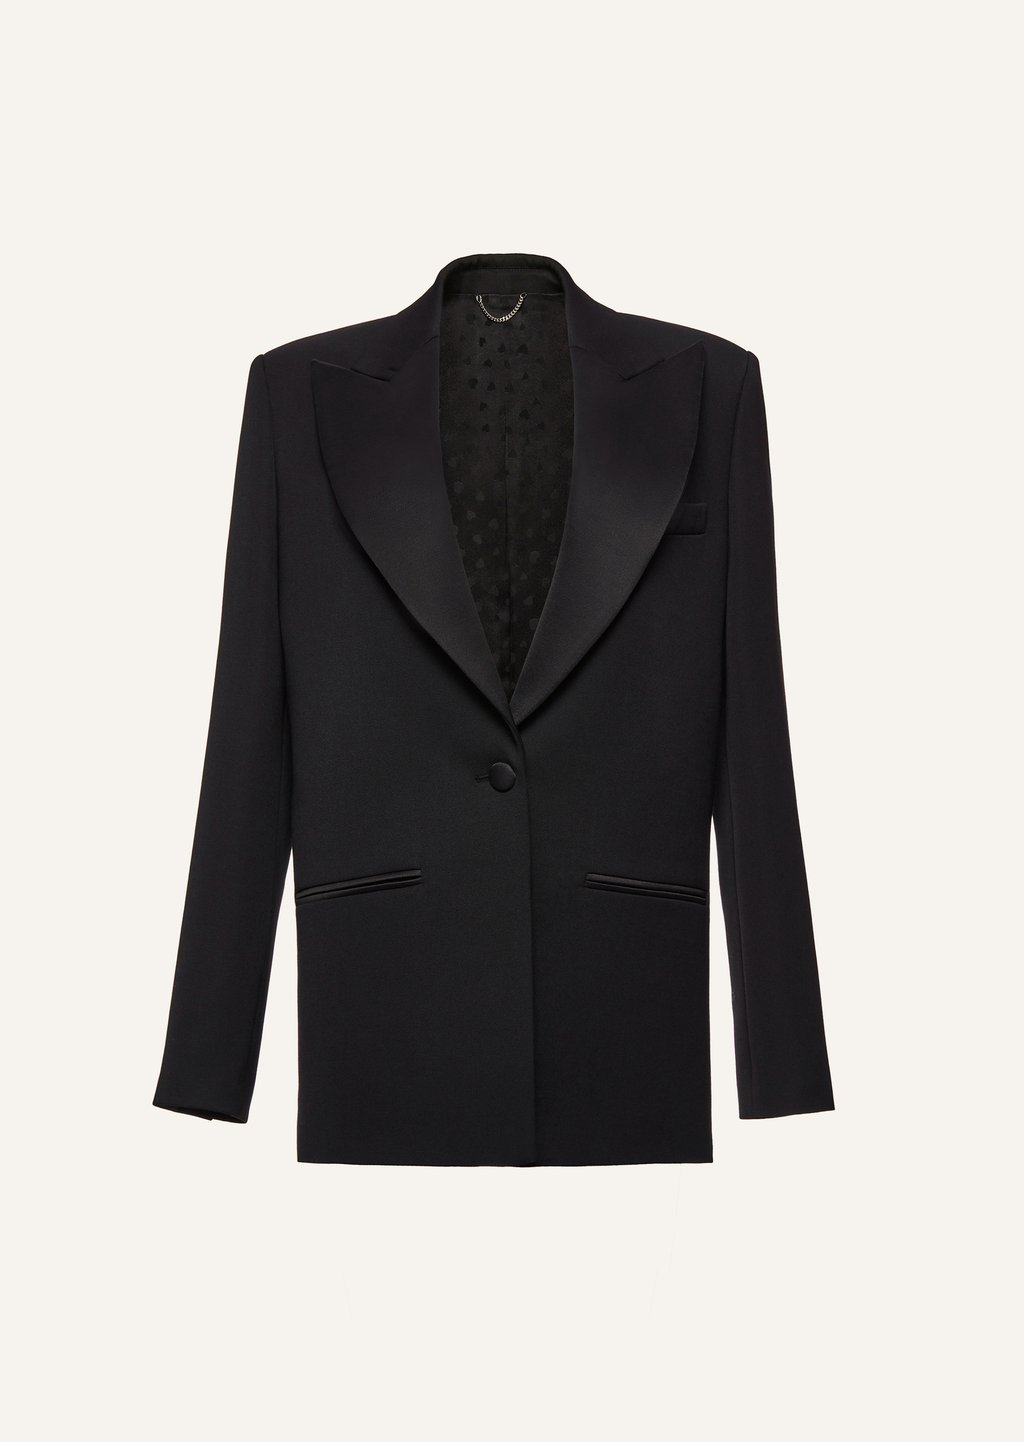 Tailored Blazer in black by Magda Butrym, available on magdabutrym.com for $1445 Candice Swanepoel Outerwear Exact Product